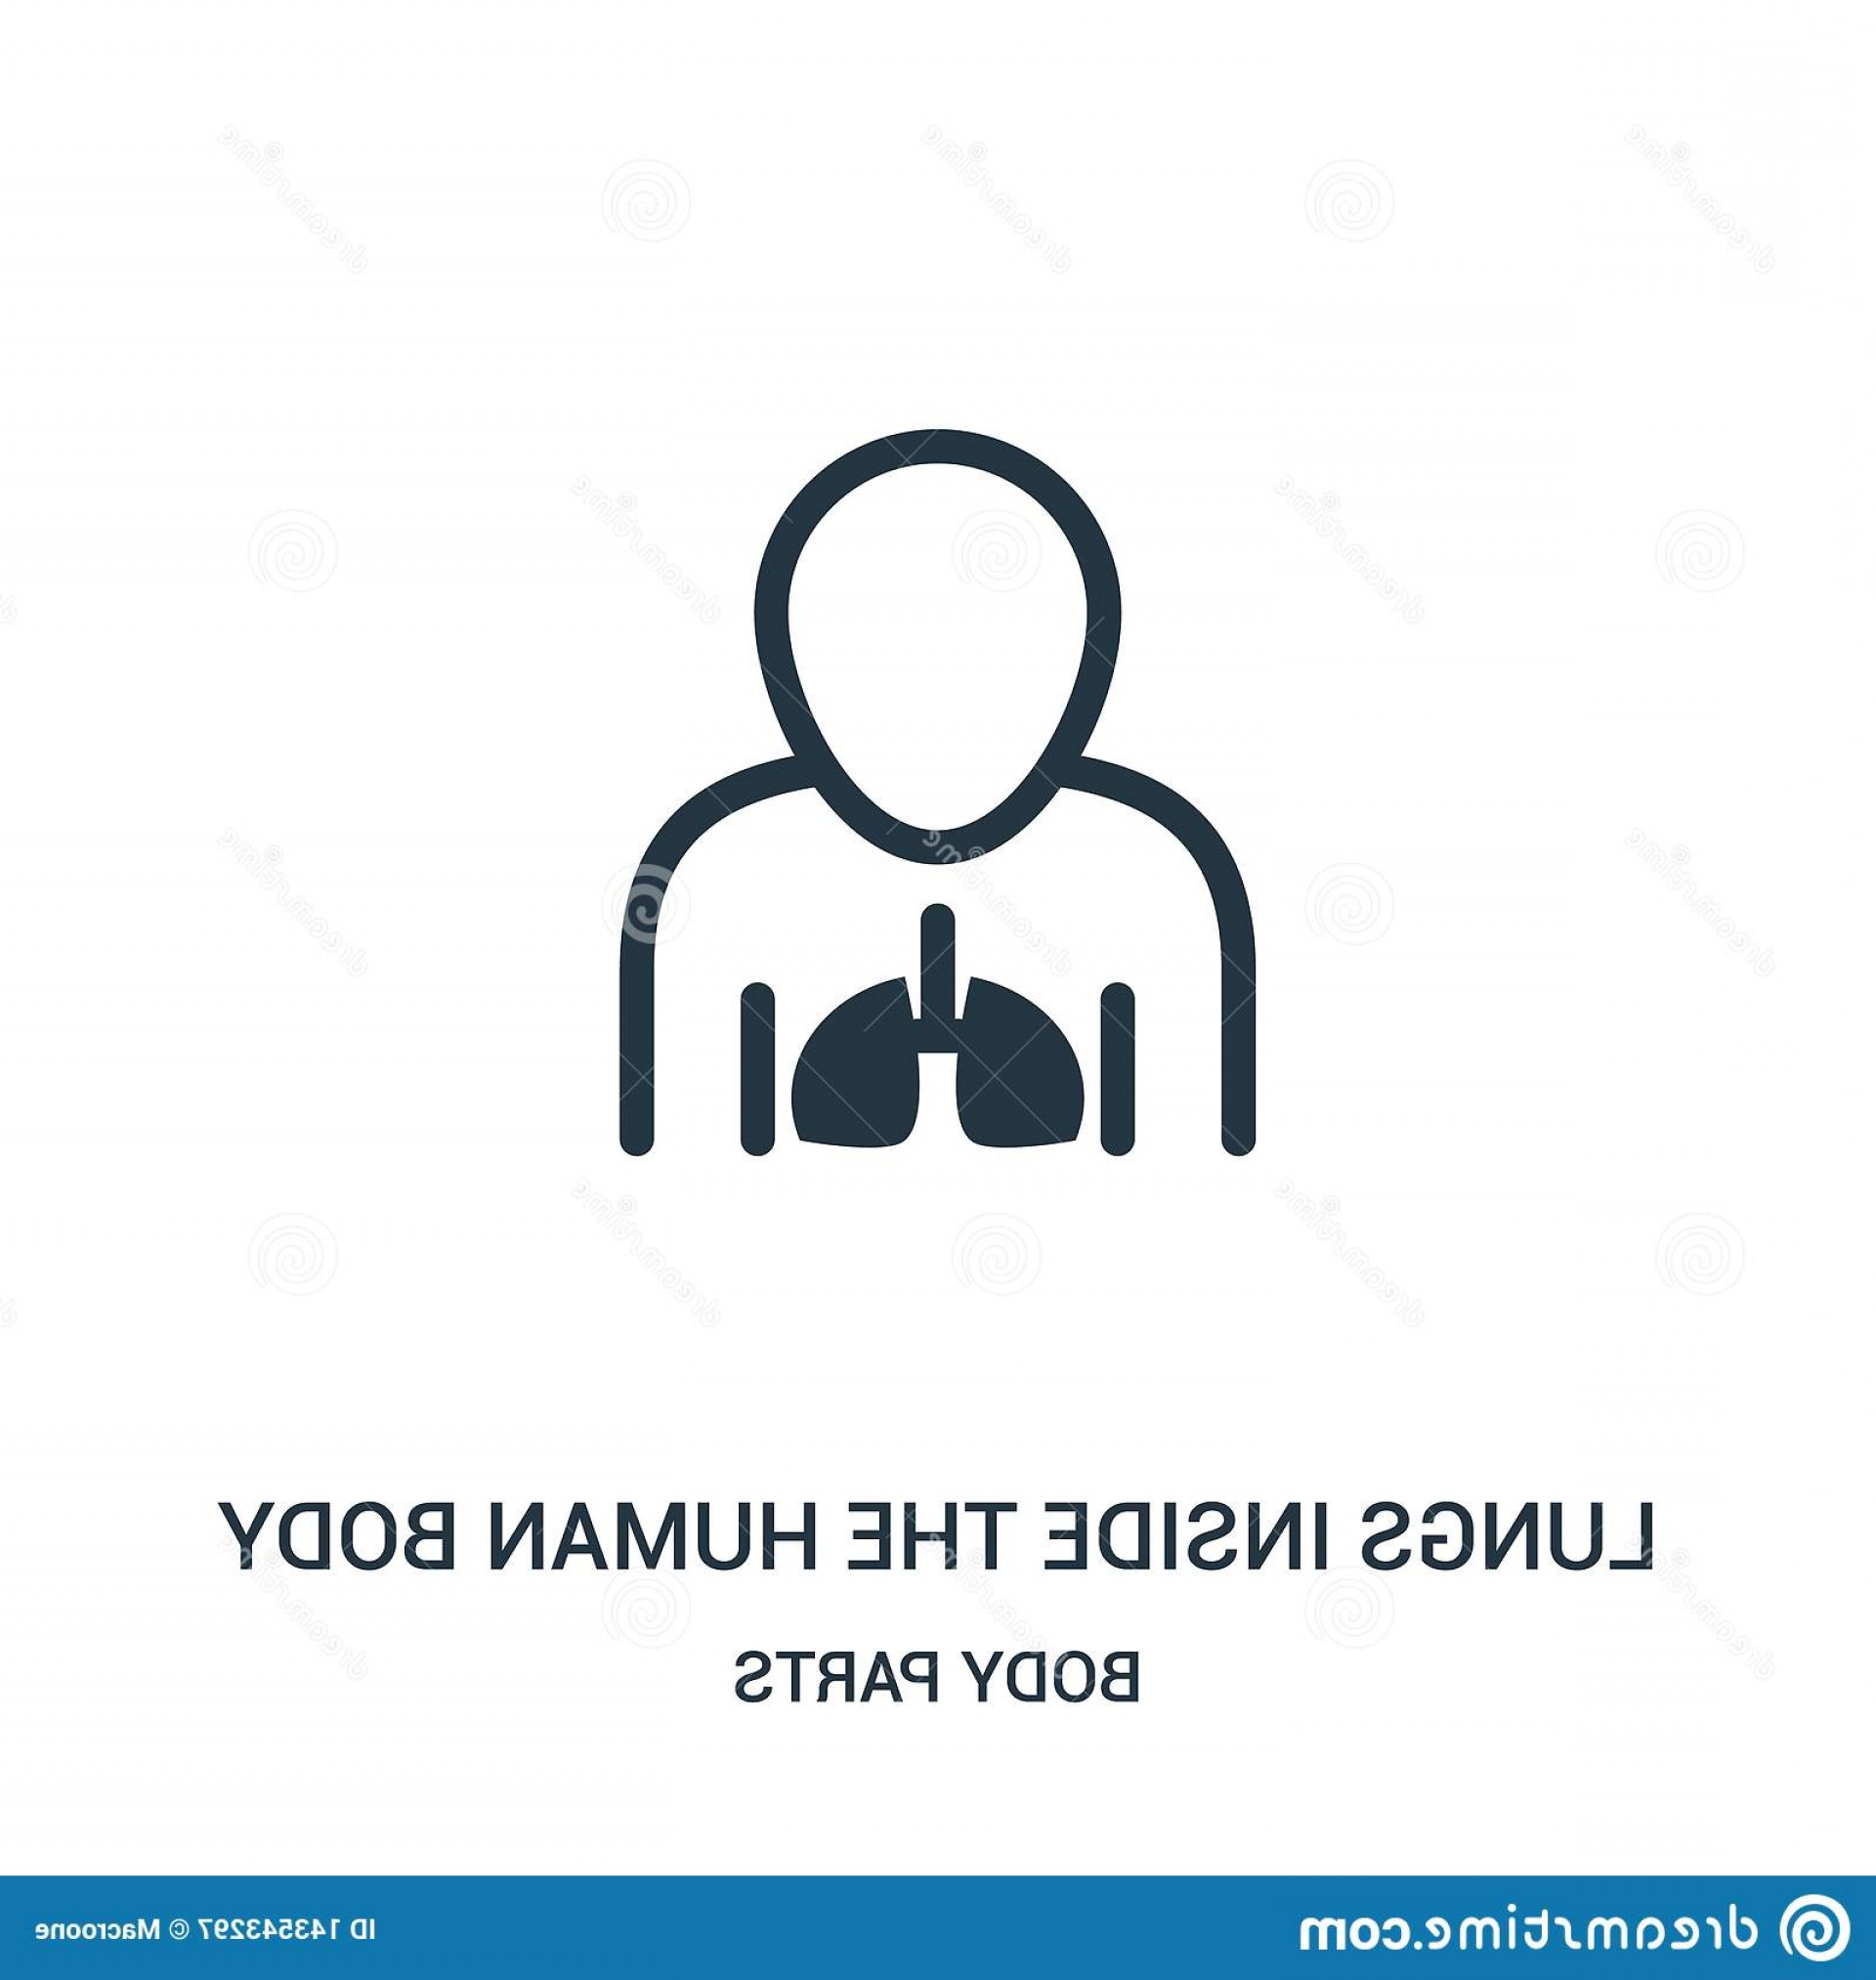 Human Body Outline Vector: Lungs Inside Human Body Icon Vector Body Parts Collection Thin Line Lungs Inside Human Body Outline Icon Vector Image